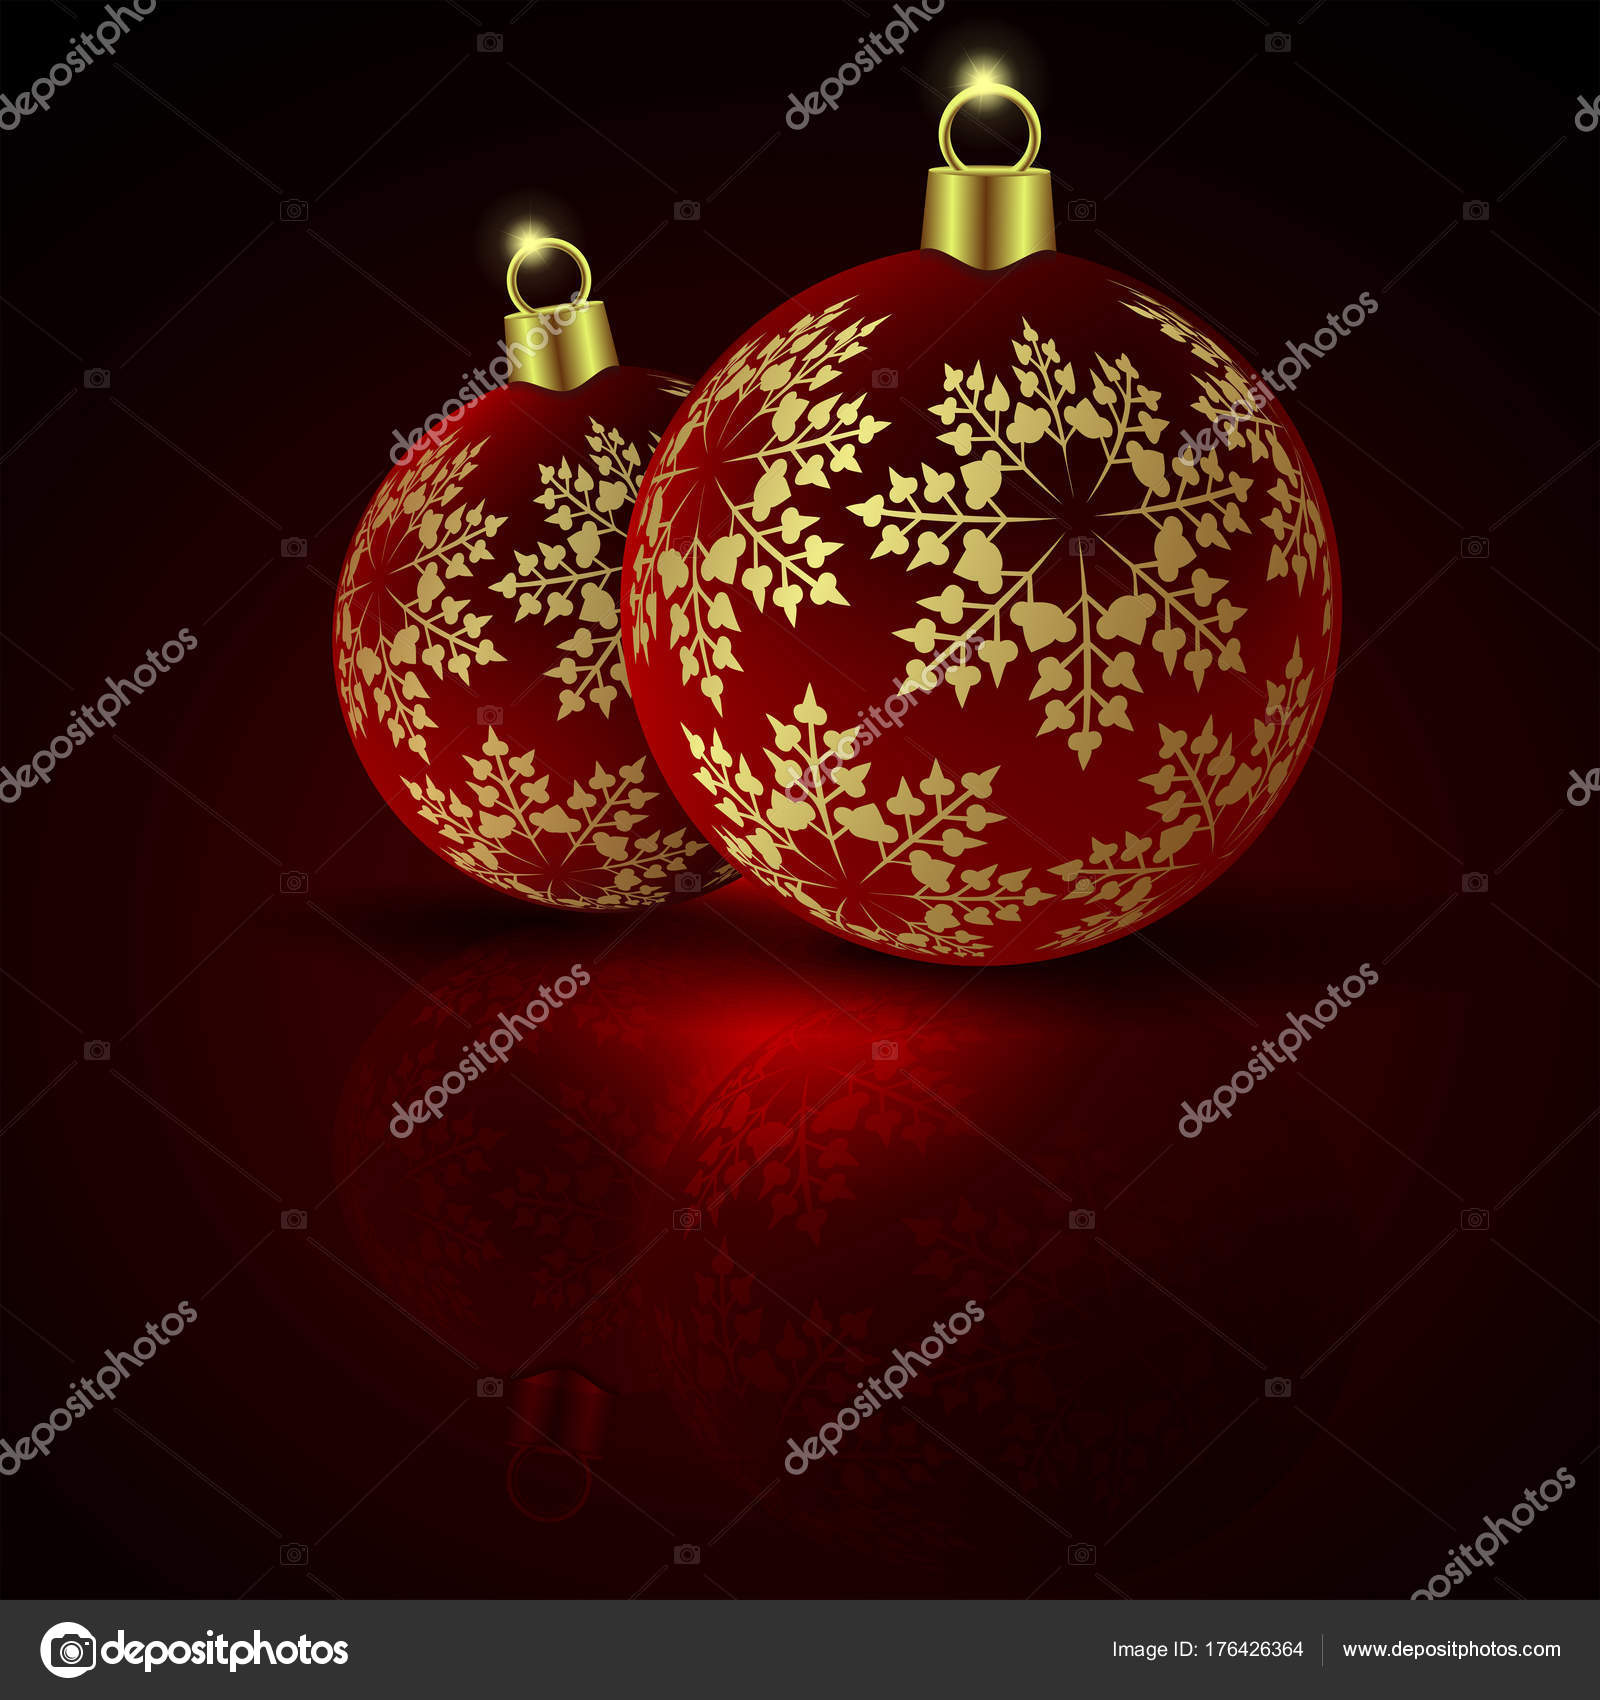 Christmas Red Balls On A Dark Background With Golden Colored Snowflakes And Mirror Image Vector By Altadi3ukr